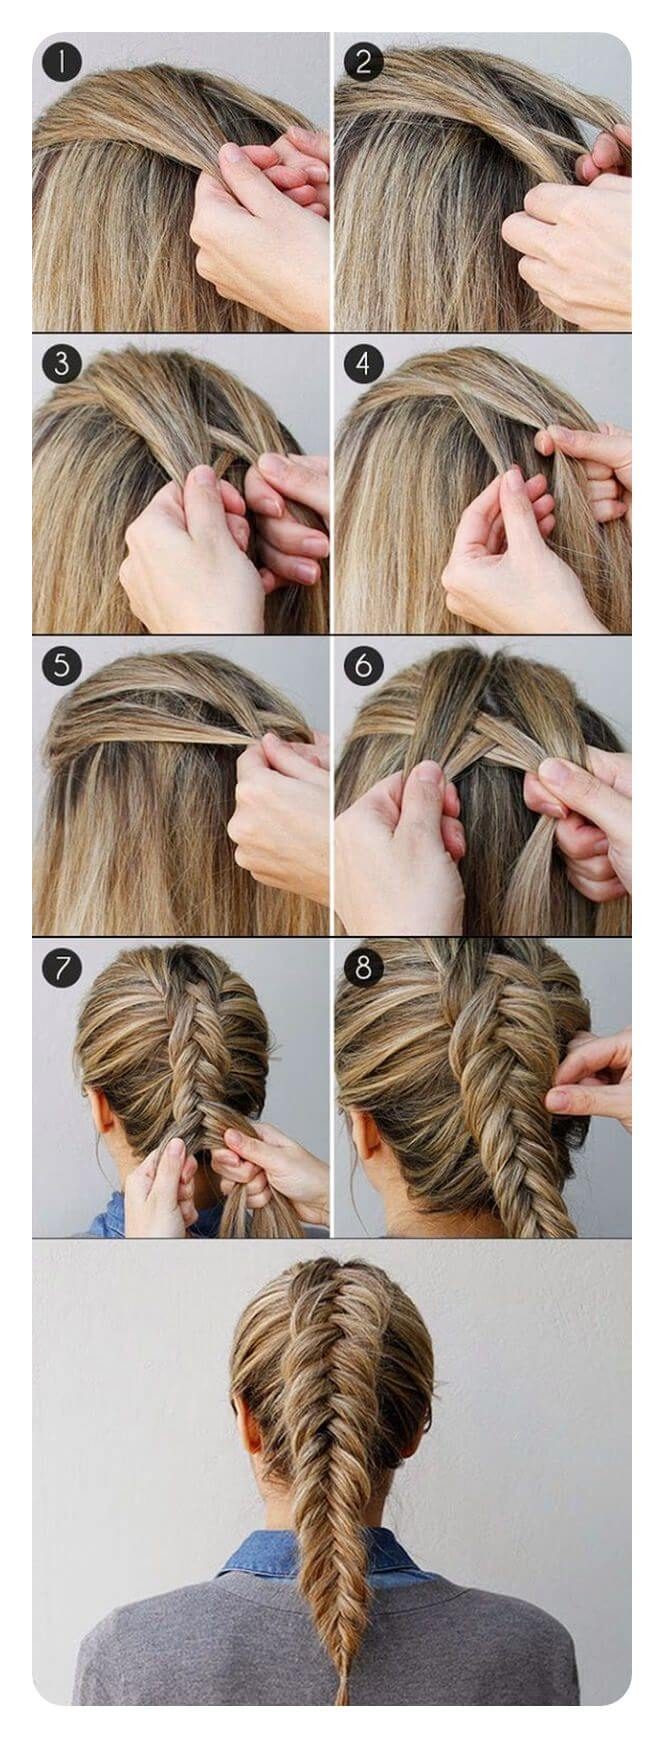 herringbone braid steps